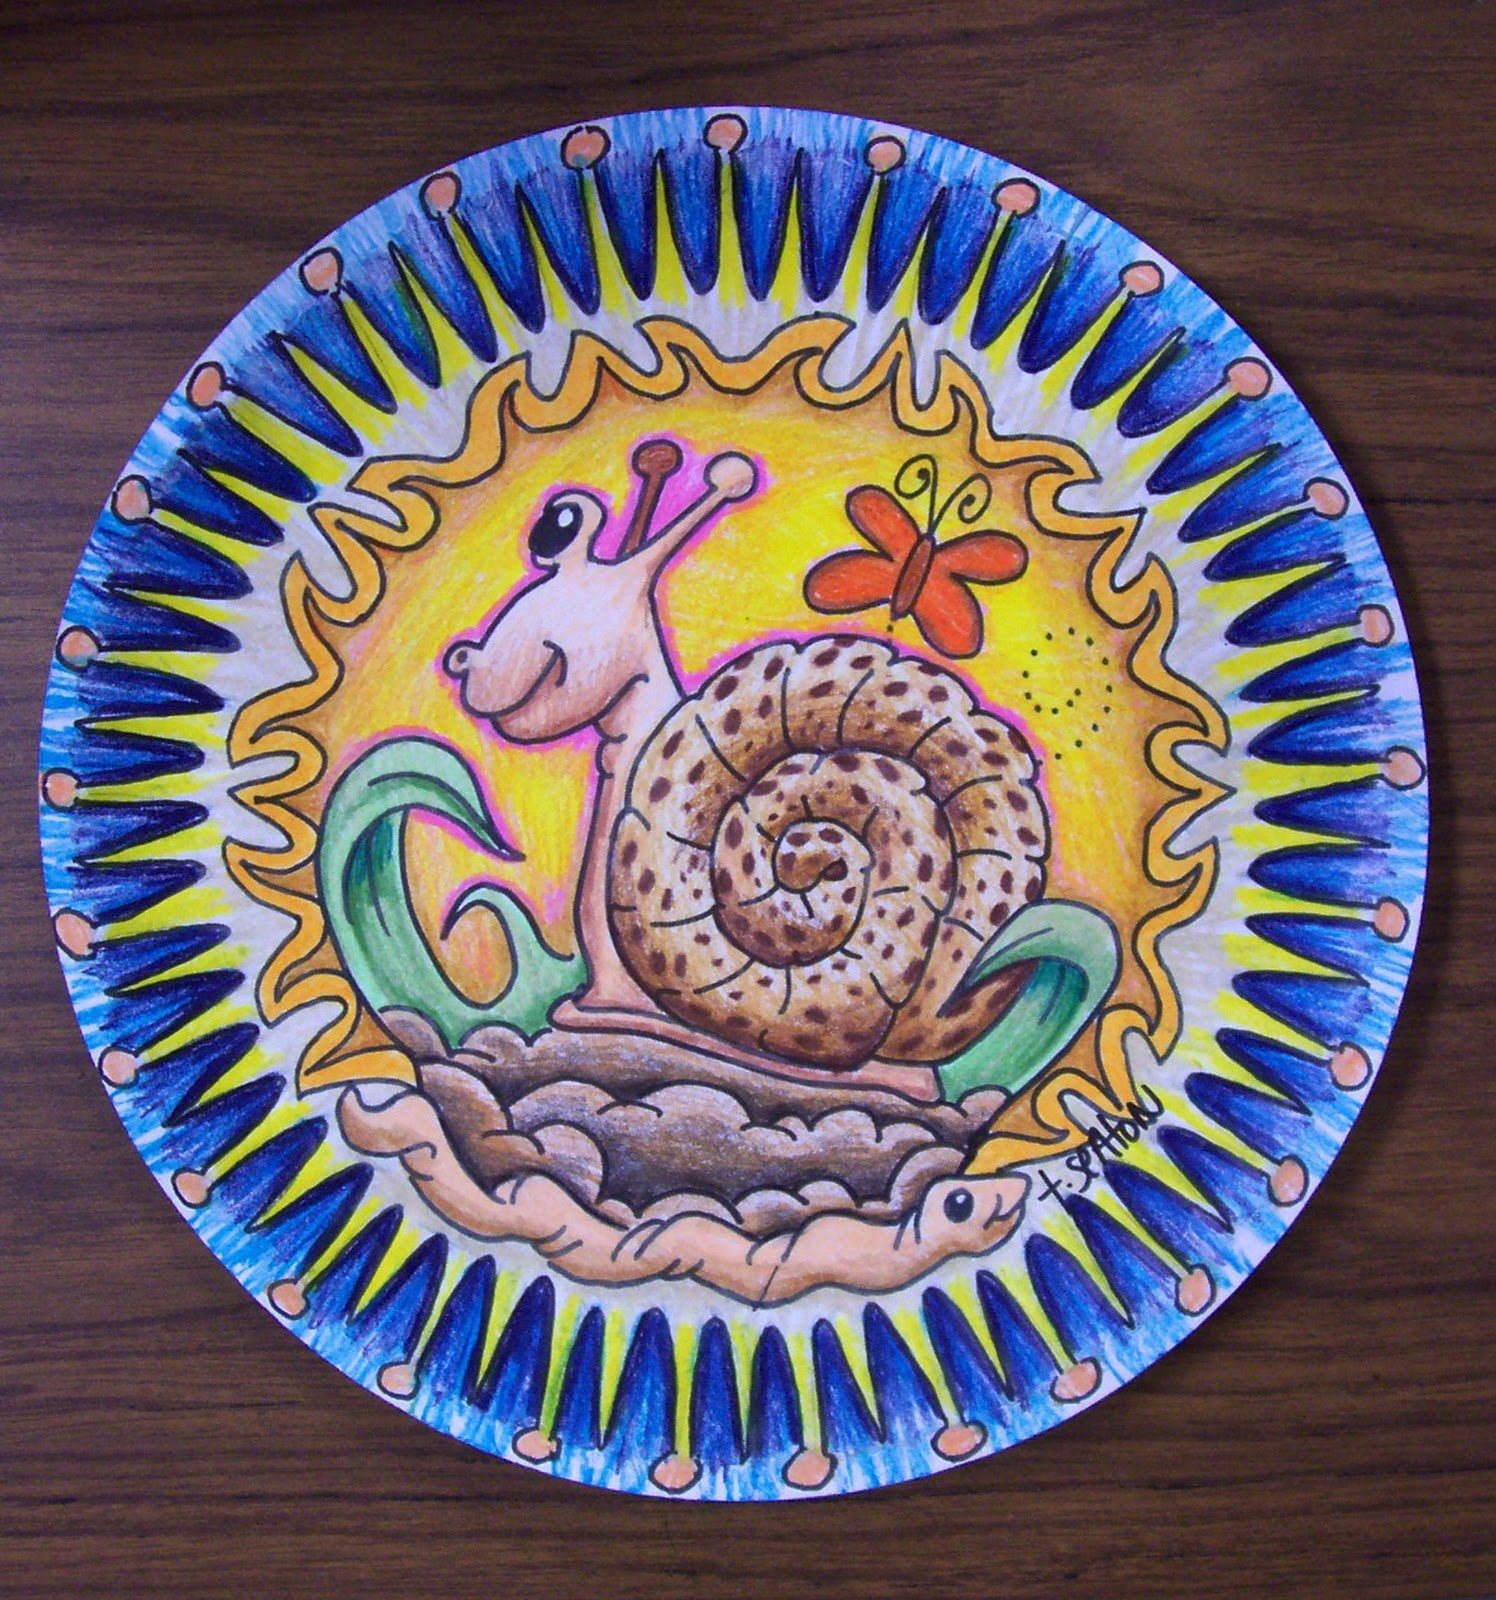 Paper Plate Art  sc 1 st  The Lost Sock - Blogger & The Lost Sock : Paper Plate Art